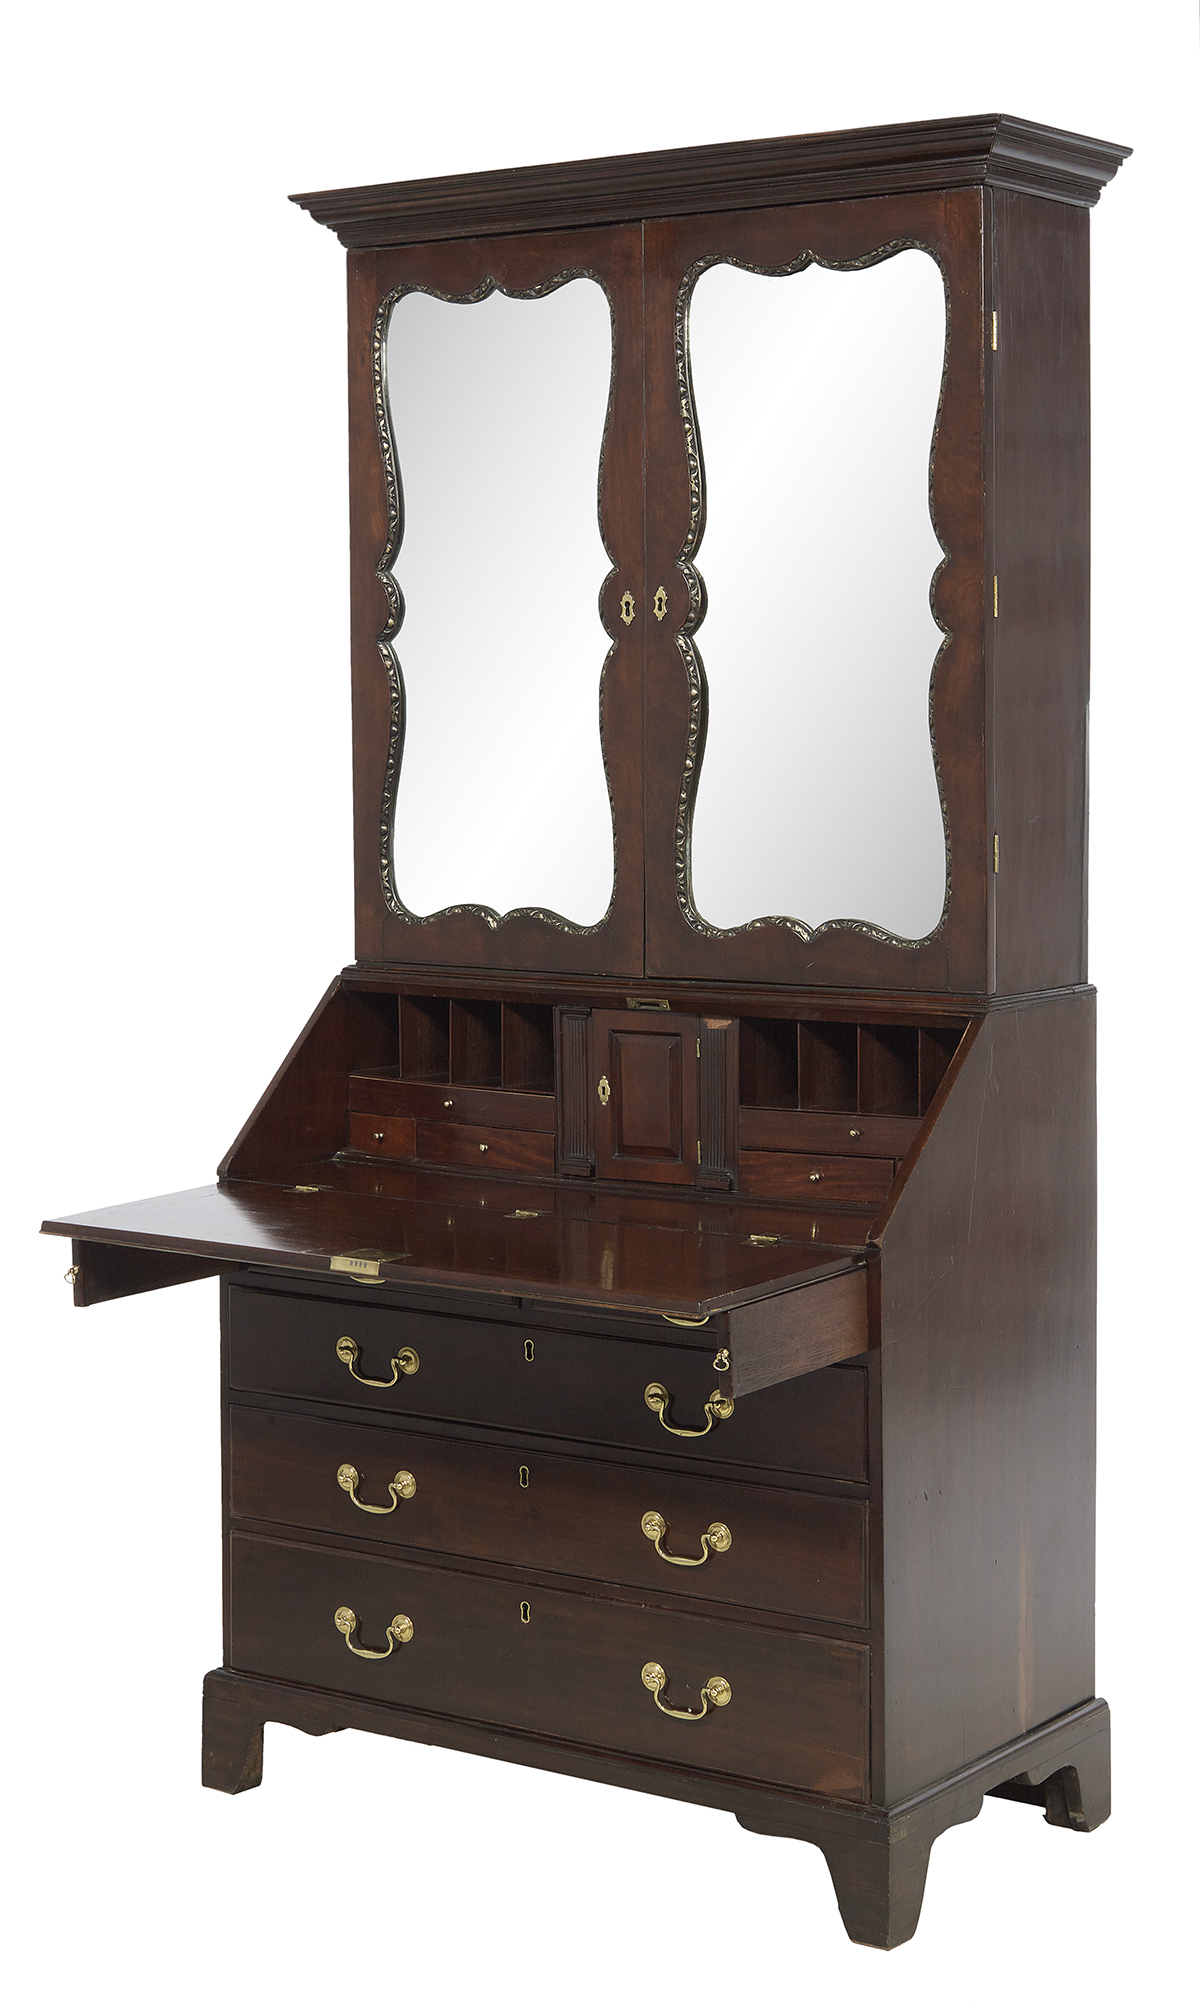 Lot 448 - George III Mahogany Secretary Bookcase